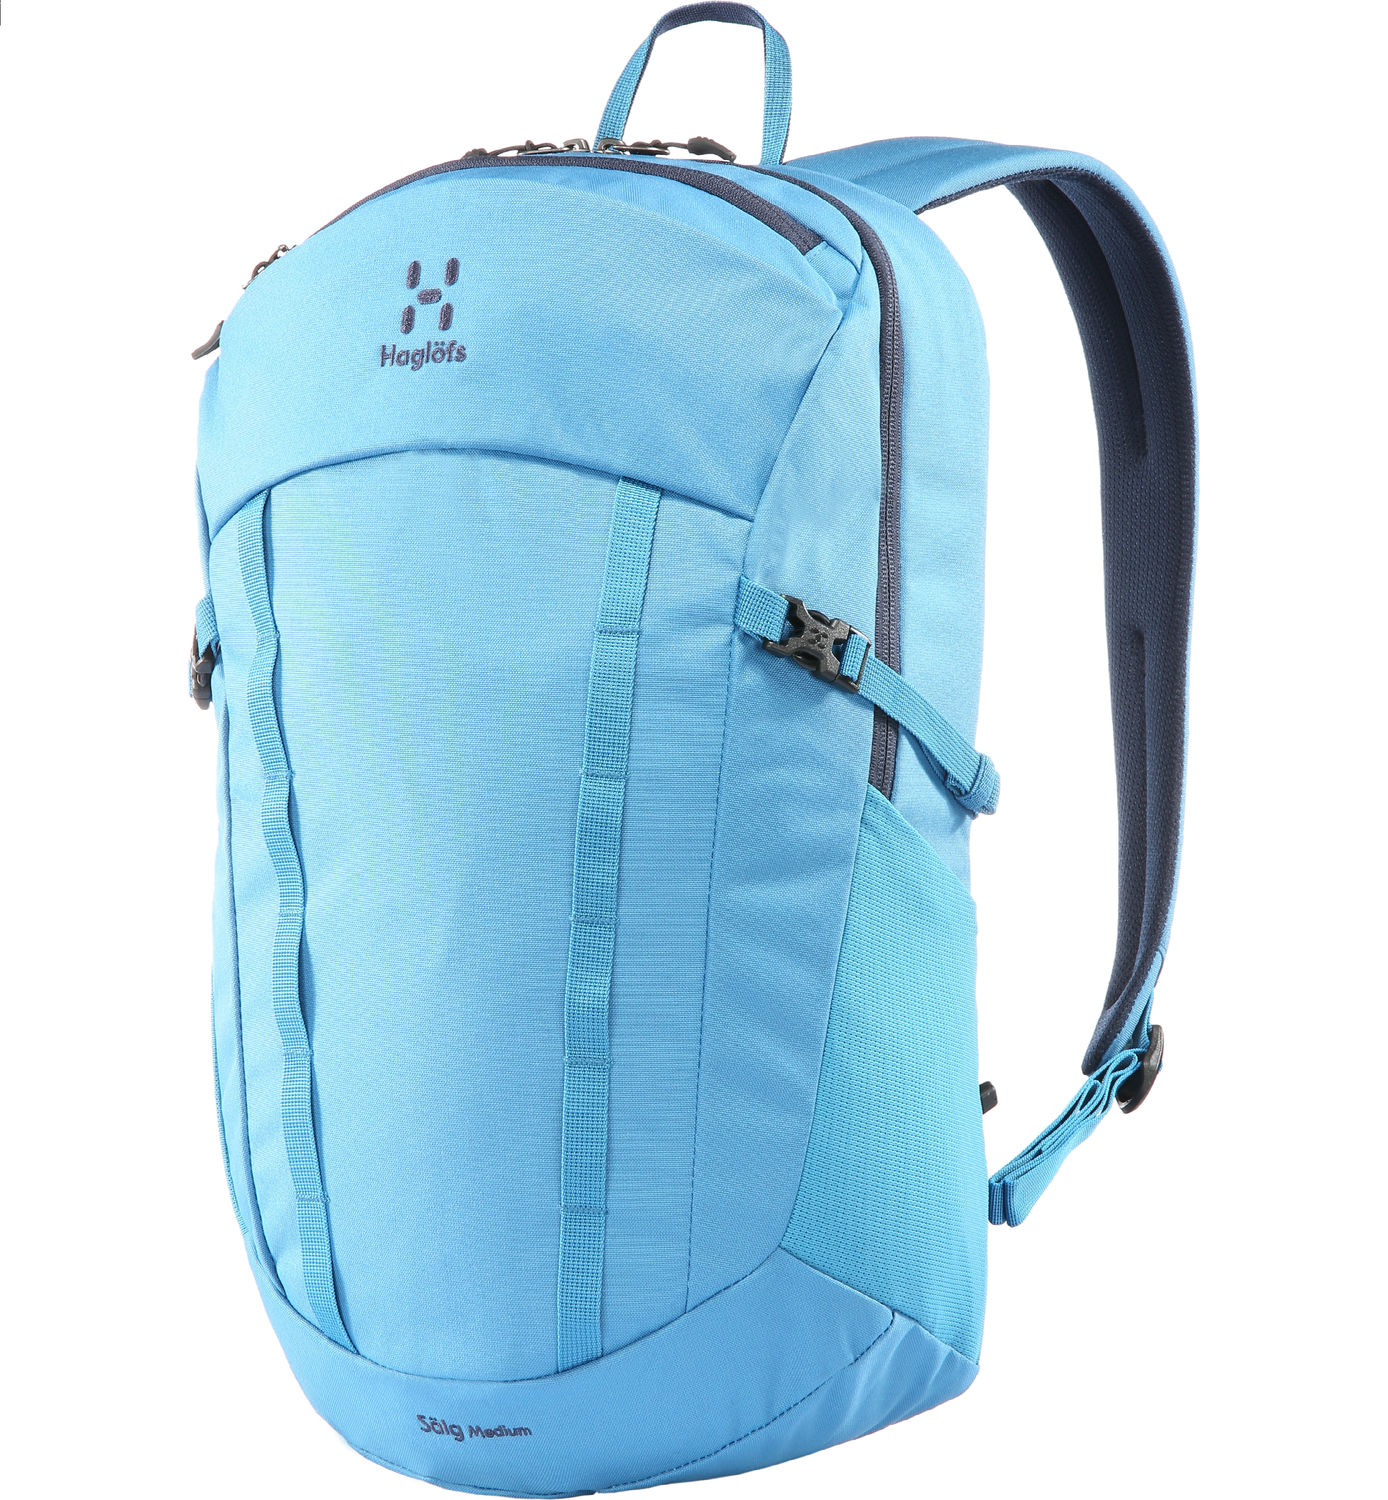 Рюкзак Haglofs Salg Medium Blue Fox/Tarn Blue - Фото 1 большая